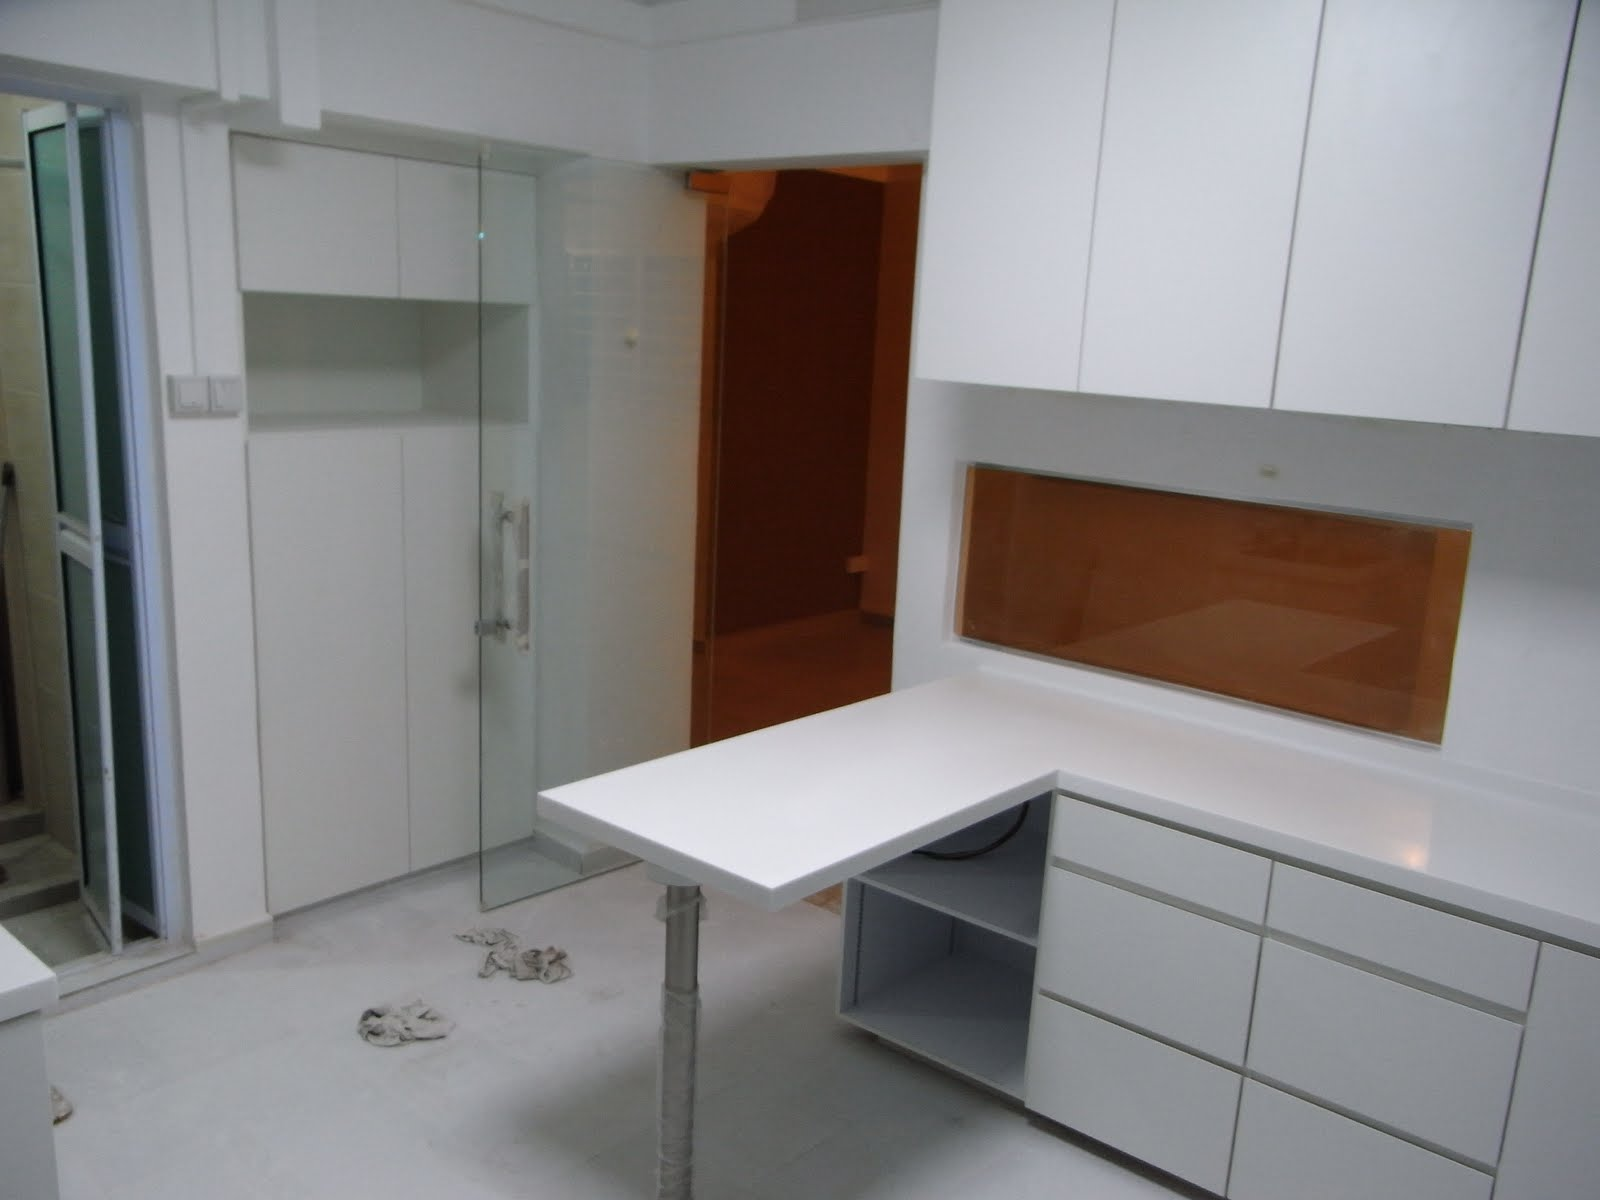 Our HDB Flat Renovation in 2009: Making a Long-shaped Living room feel